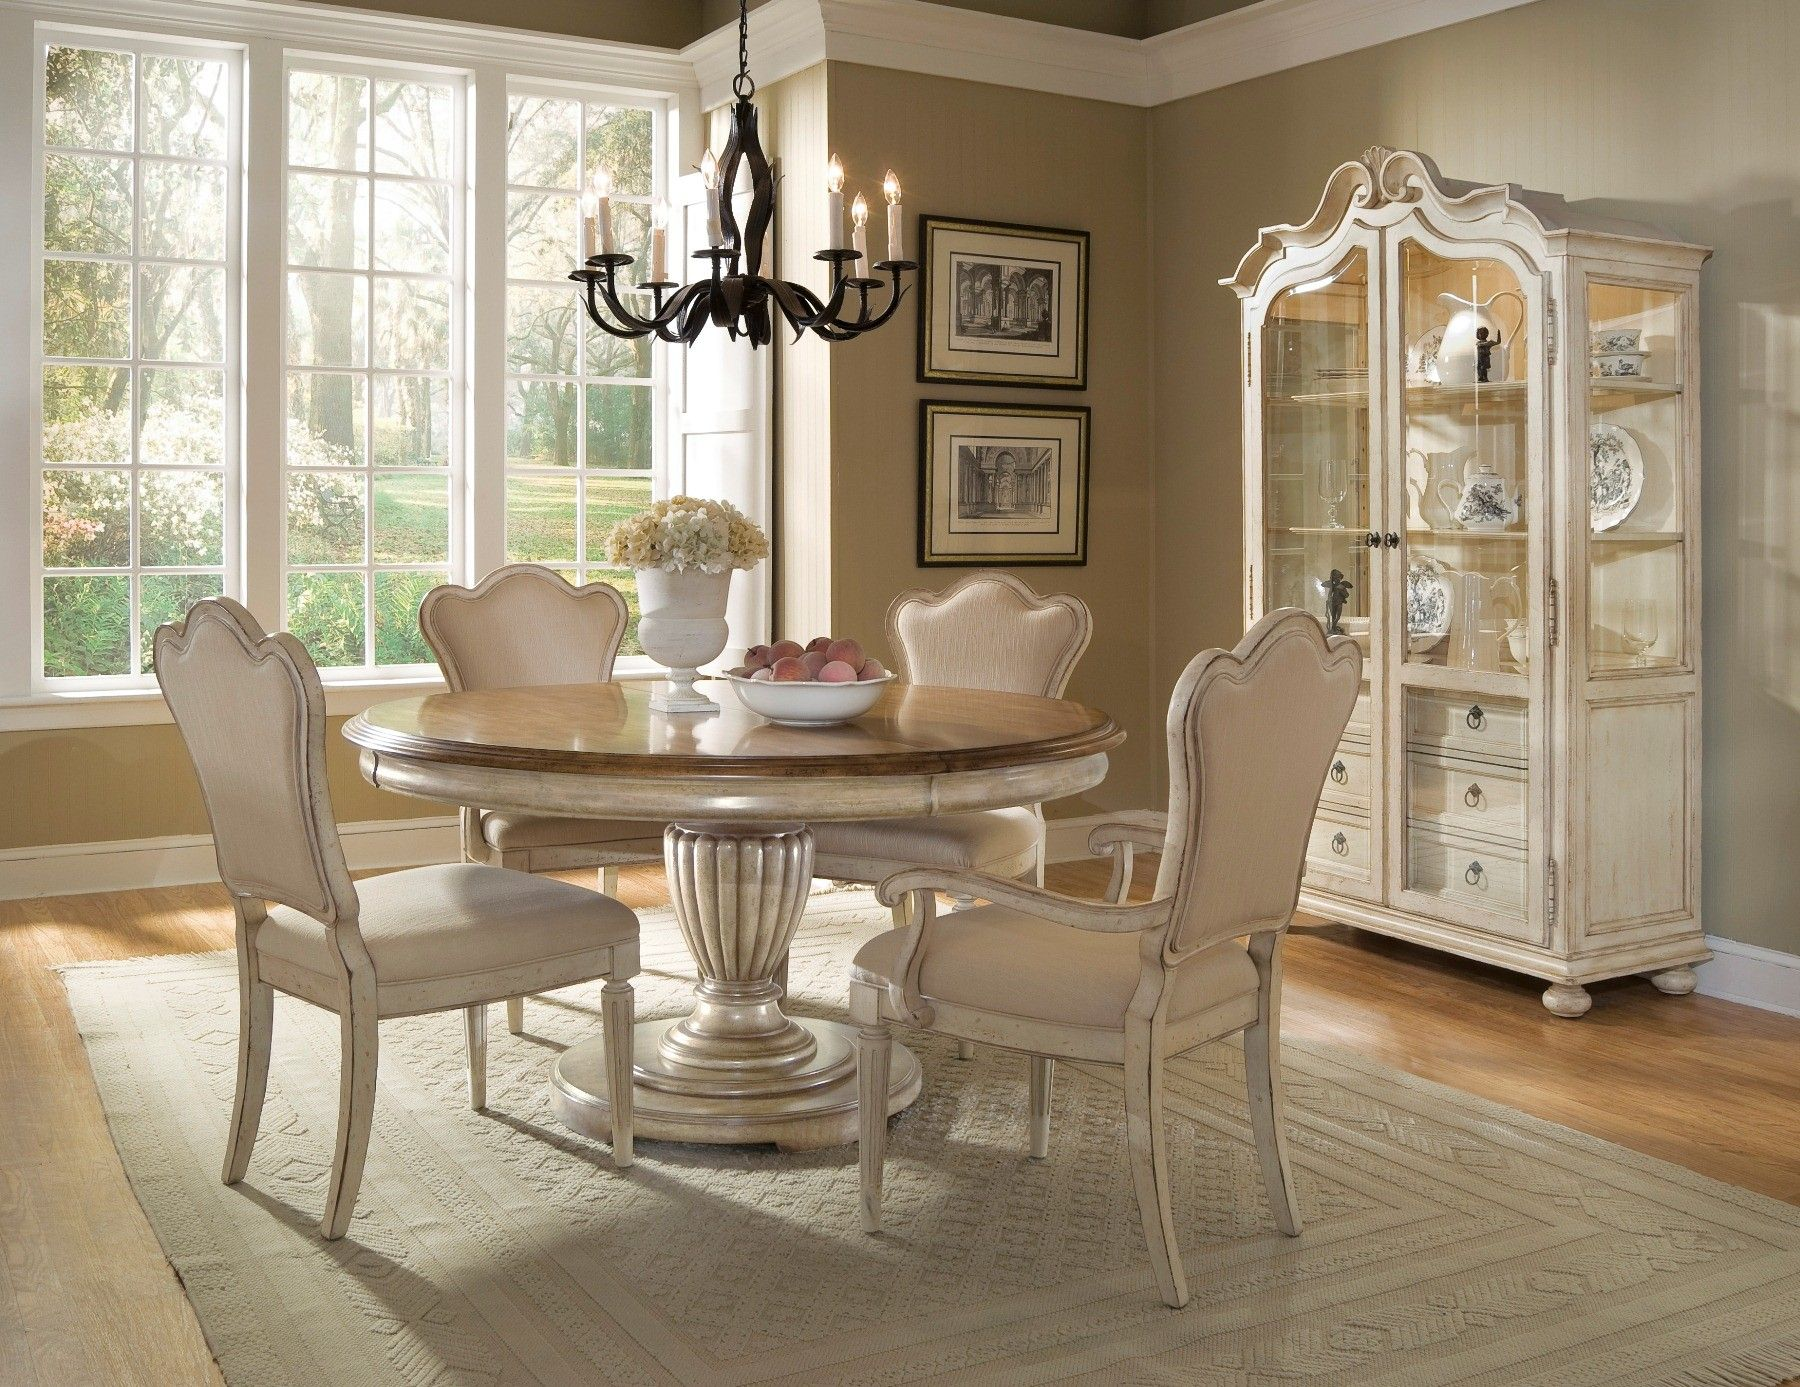 White dining room table - Found It At Wayfair Provenance Extendable Dining Table